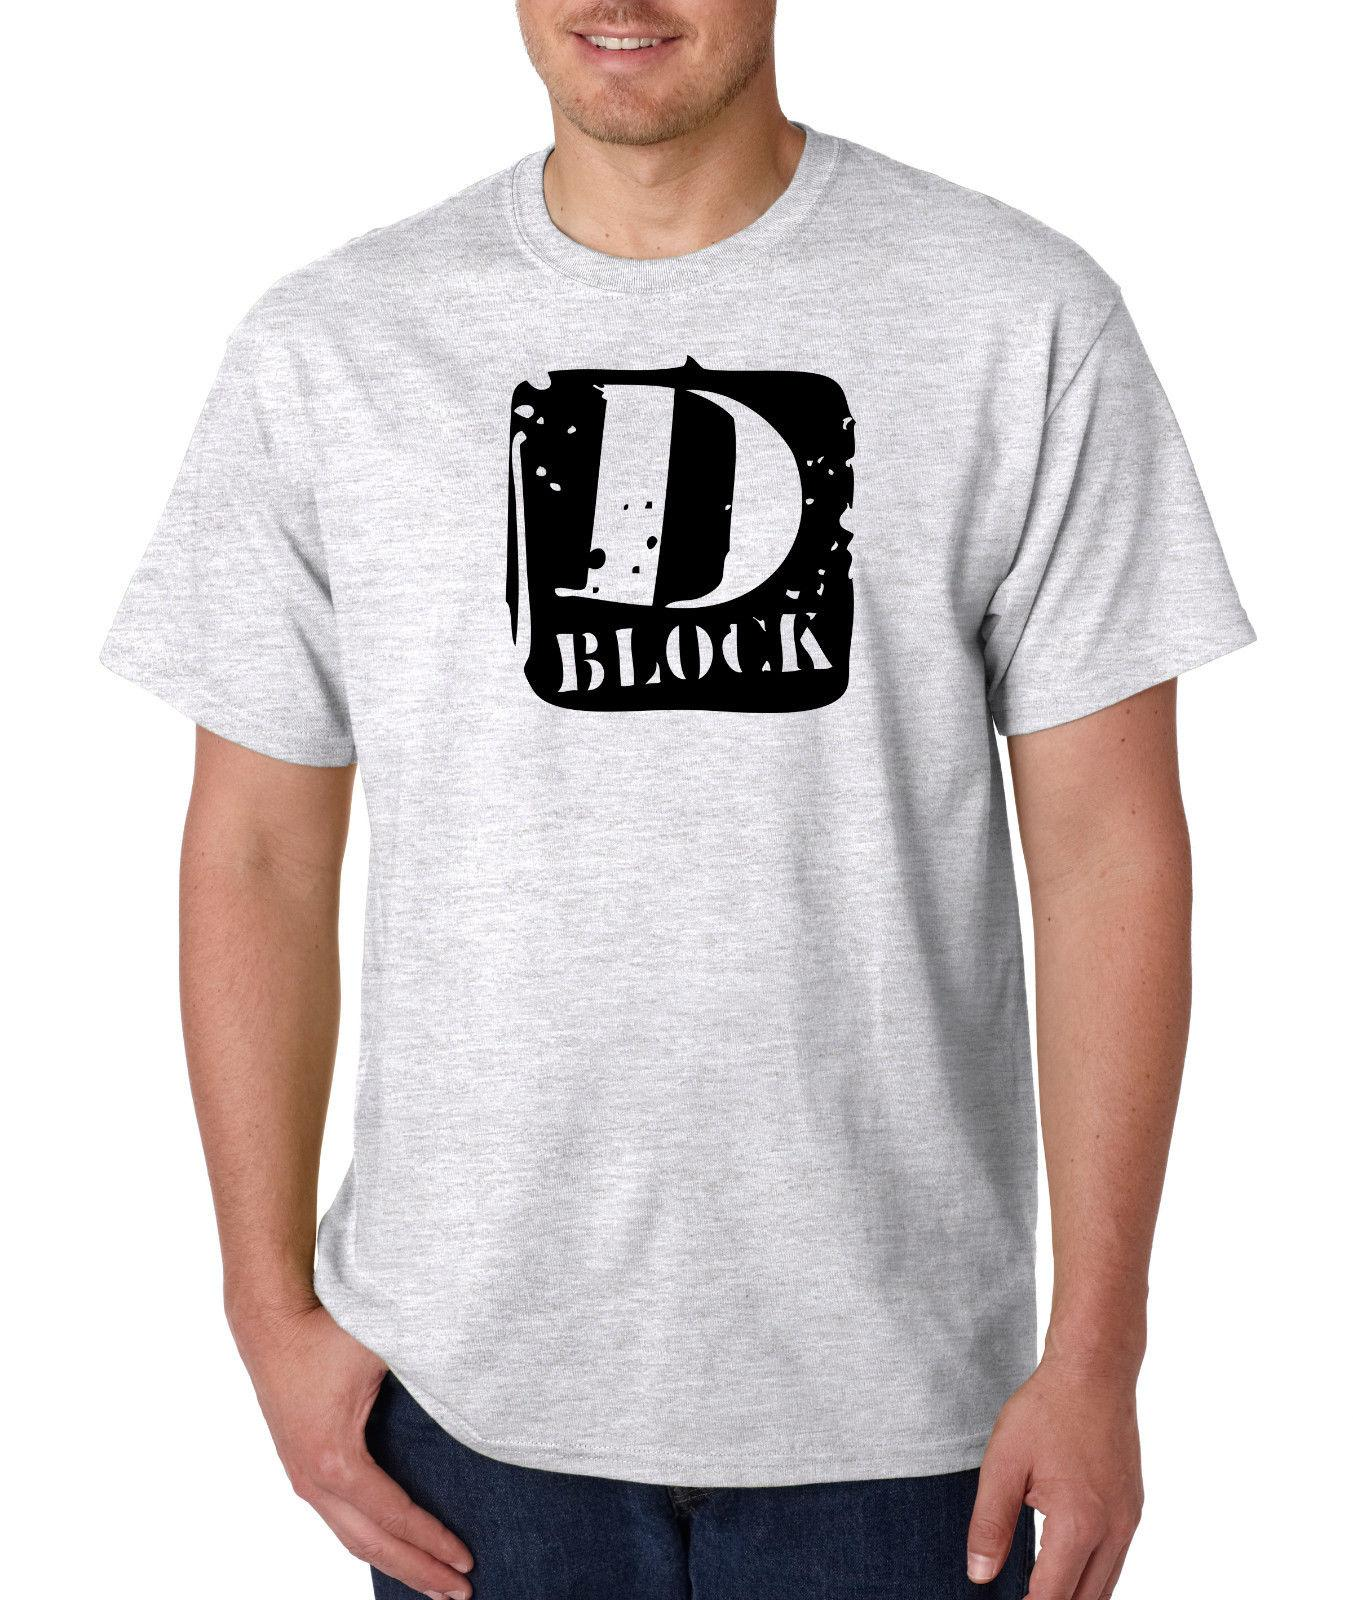 D Block Logo T Shirt Classic Hip Hop Tee Rap T-Shirt Vintage Style Jadakiss Lox Funny free shipping Unisex Casual